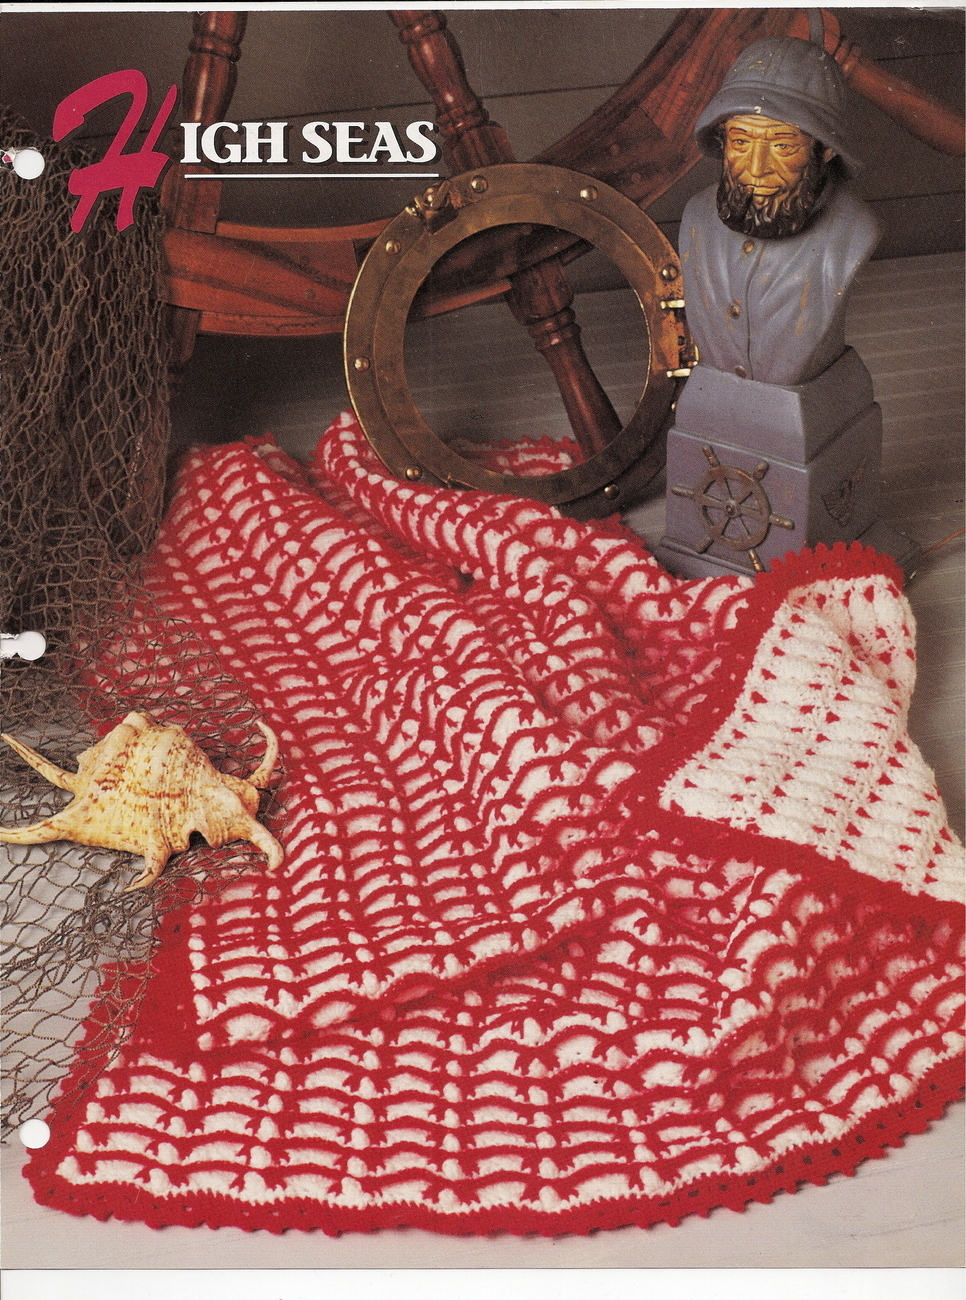 Annies Attic Crochet : High Seas Afghan Crochet Pattern Annies Attic Crochet & Quilt Club ...